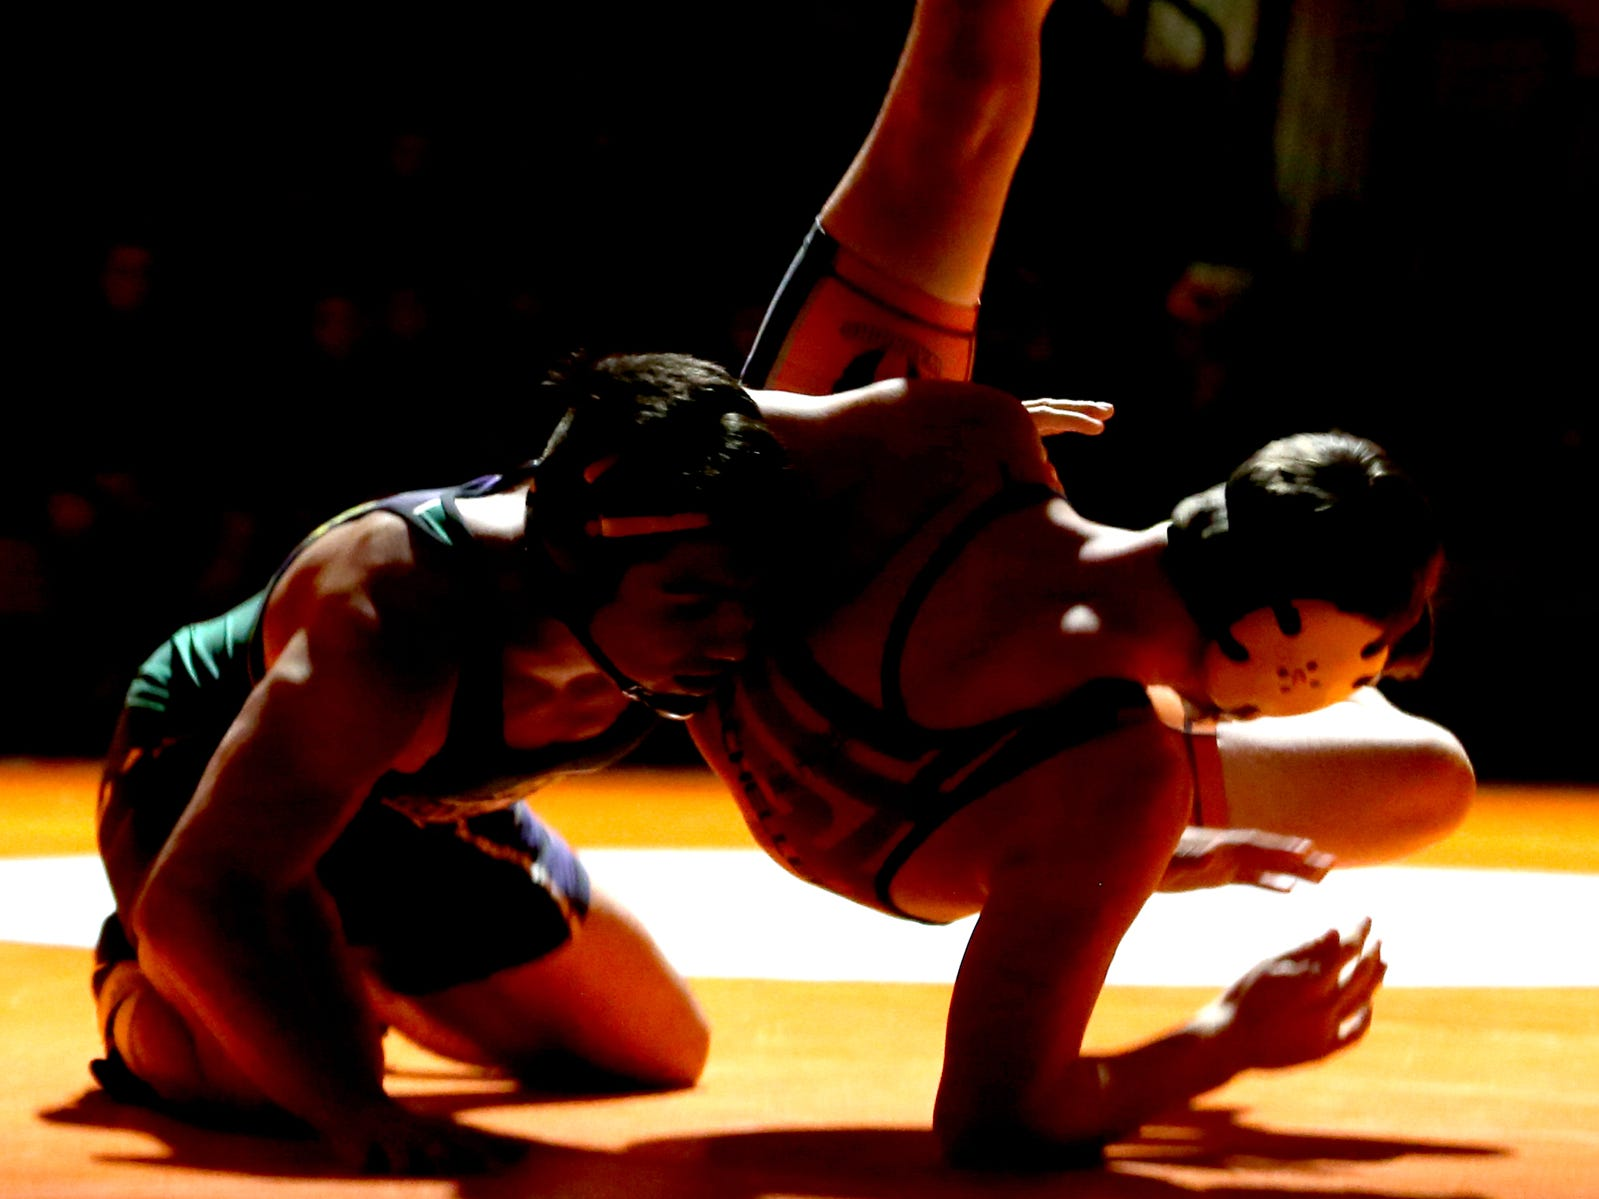 McKay's David Rubio, left, and Sprague's Cole Bacheller compete in the 170 pound weight class during the McKay vs. Sprague wrestling meet at Sprague High School in Salem on Wednesday, Jan. 9, 2019.